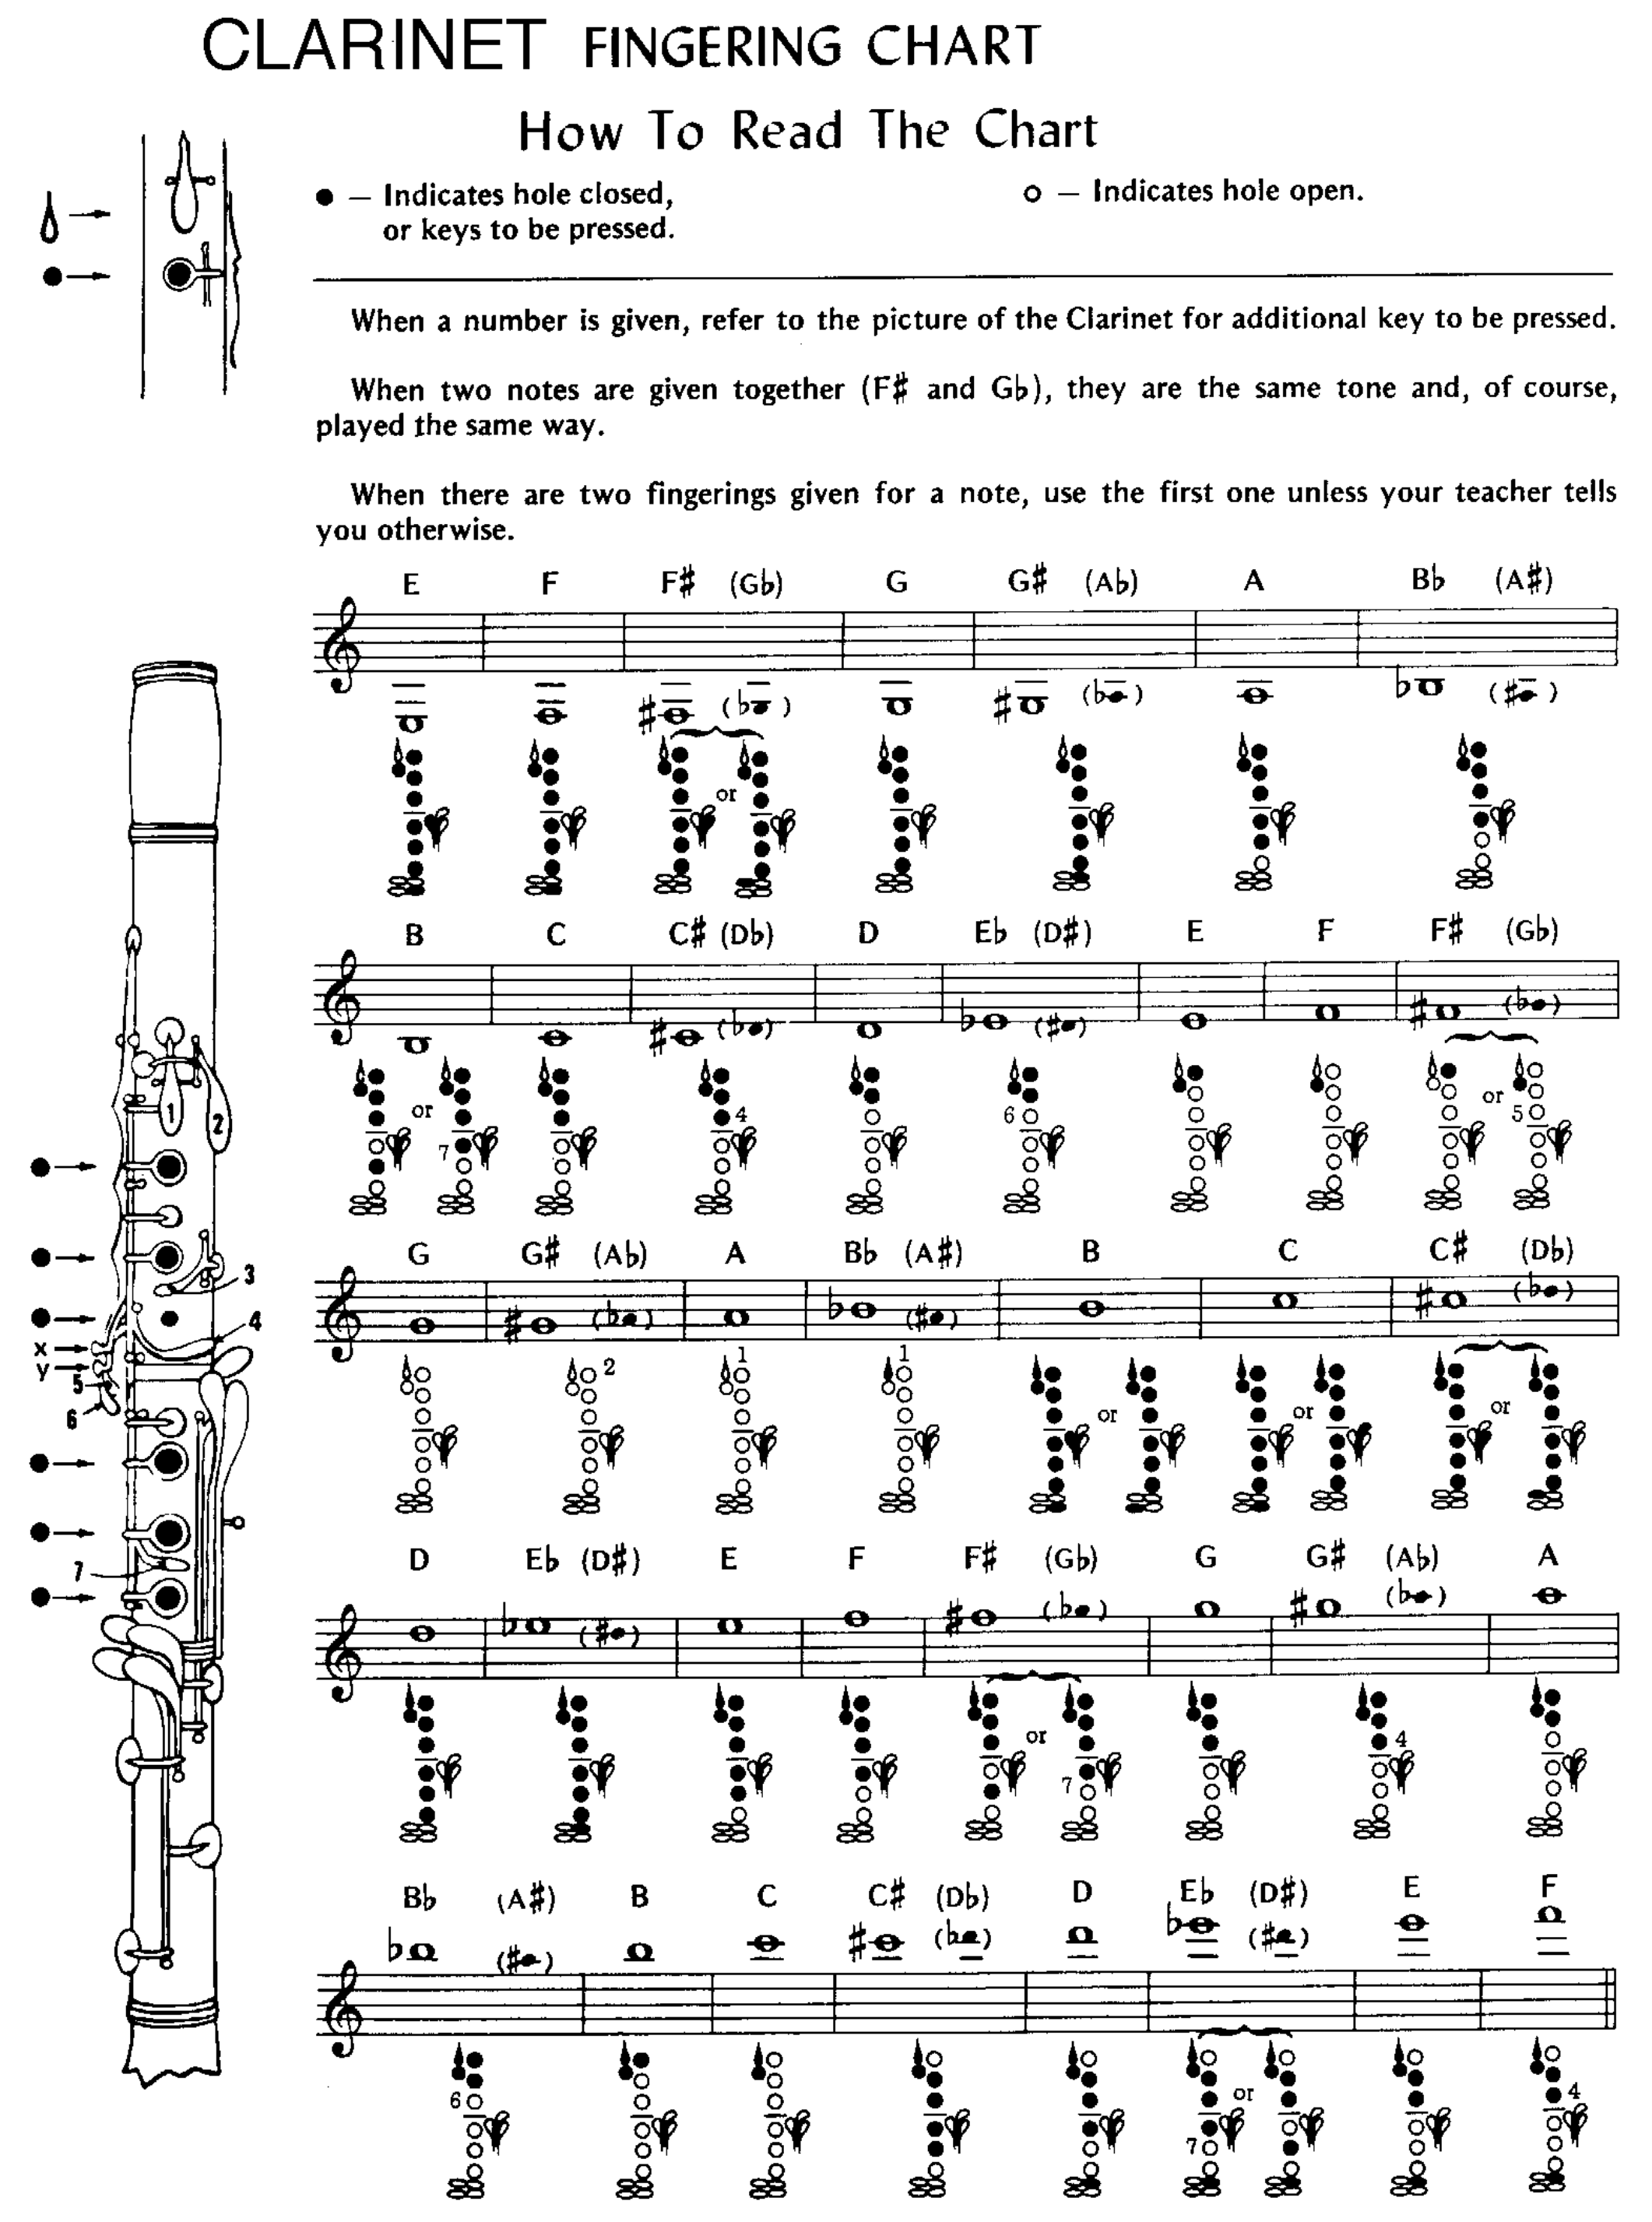 picture about Clarinet Finger Chart for Beginners Printable named Pattern Clarinet Fingering Chart Cost-free Down load